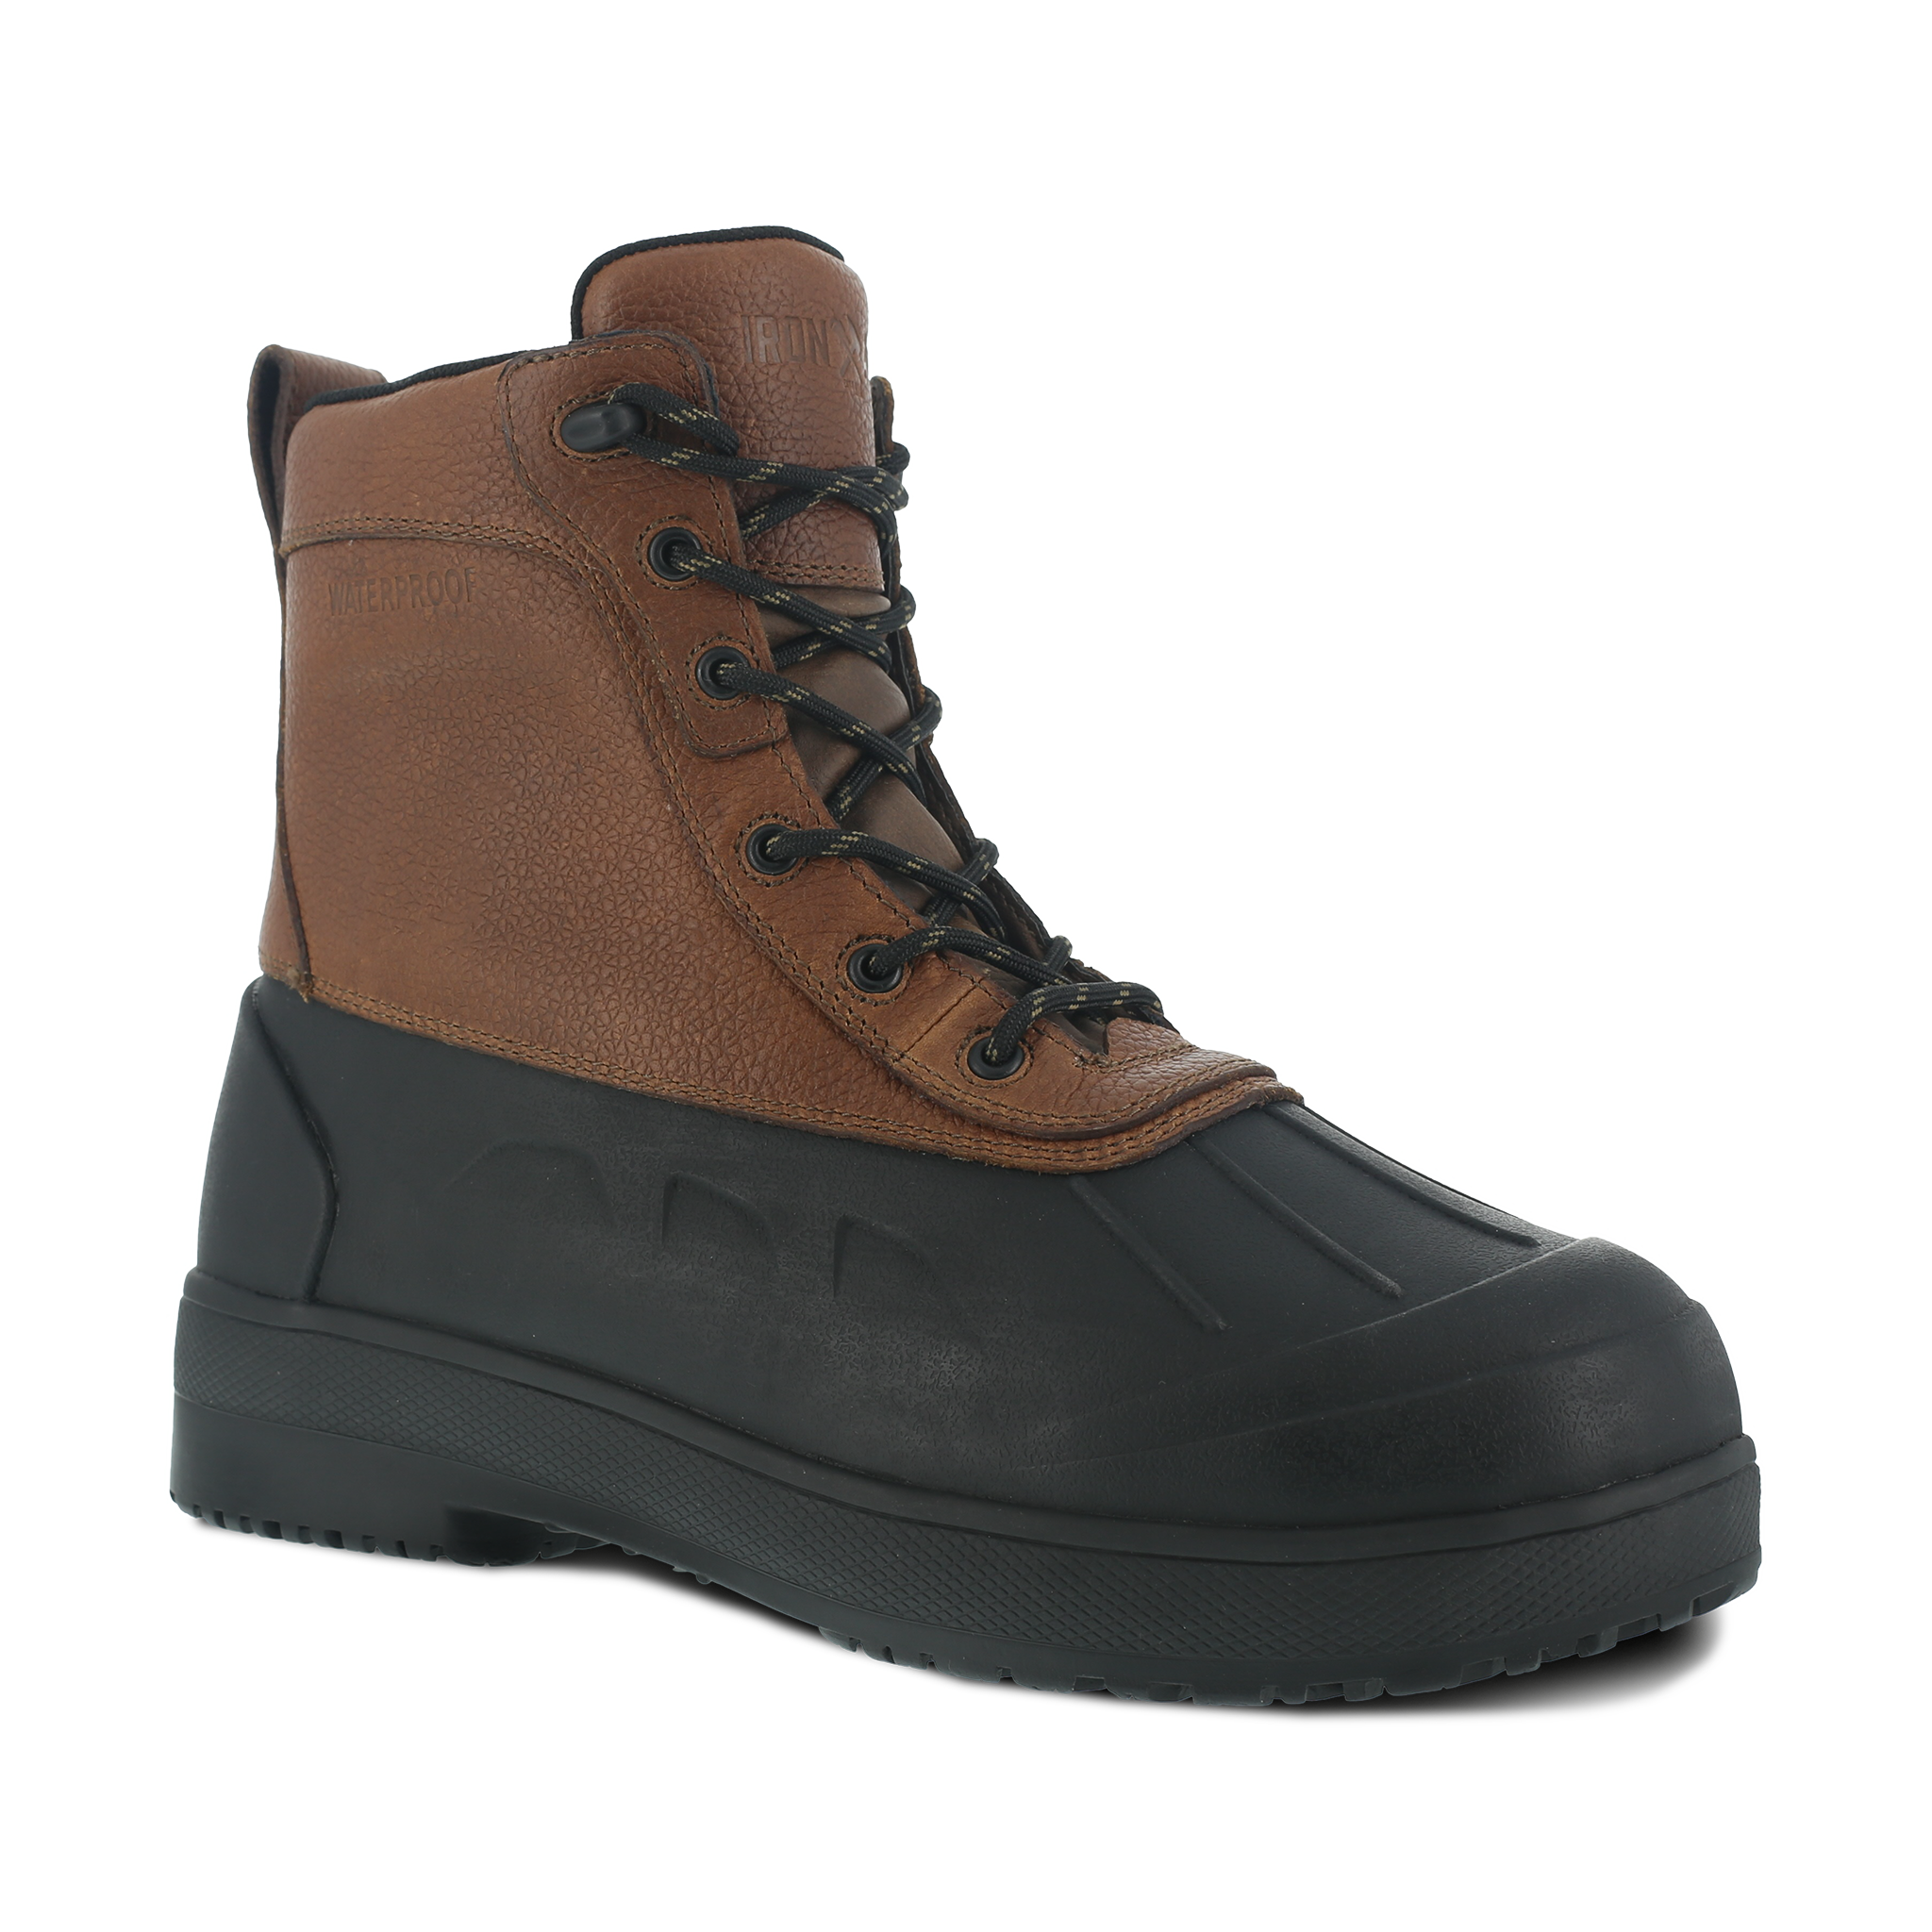 Iron Age Women's Rubber Vamp and Leather Shaft Waterproof Work Boot - IA965